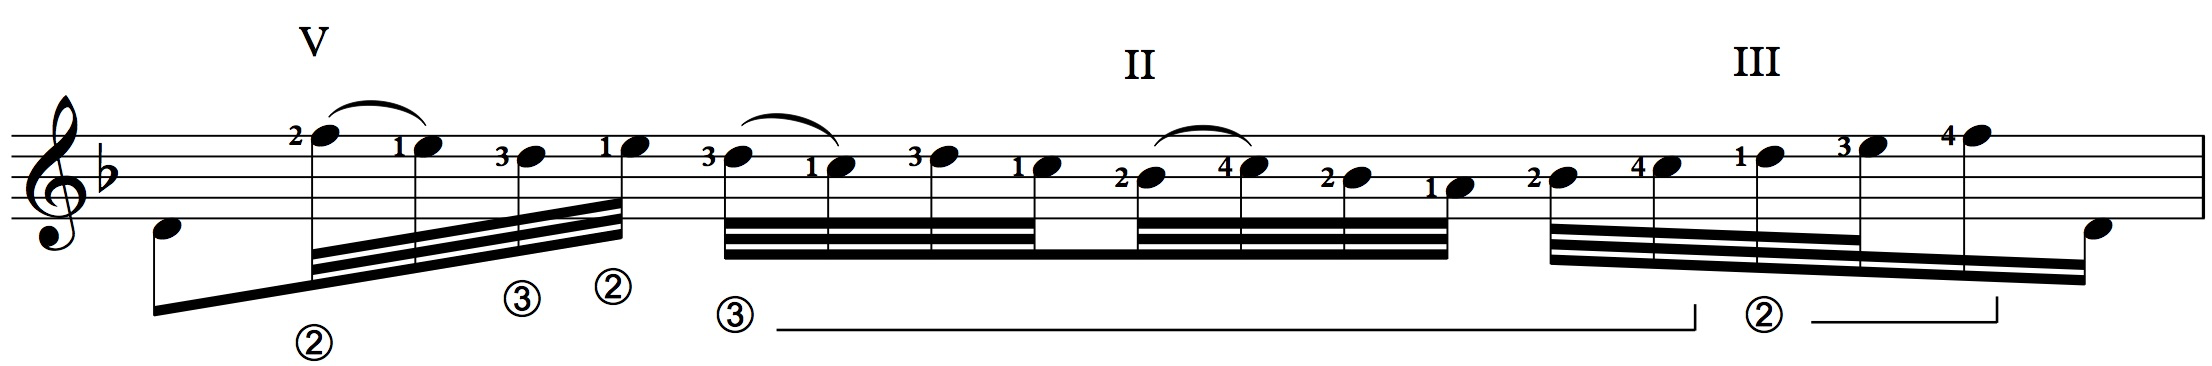 Measure 121 of J. S. Bach's chaconne in d minor fingered for guitar.